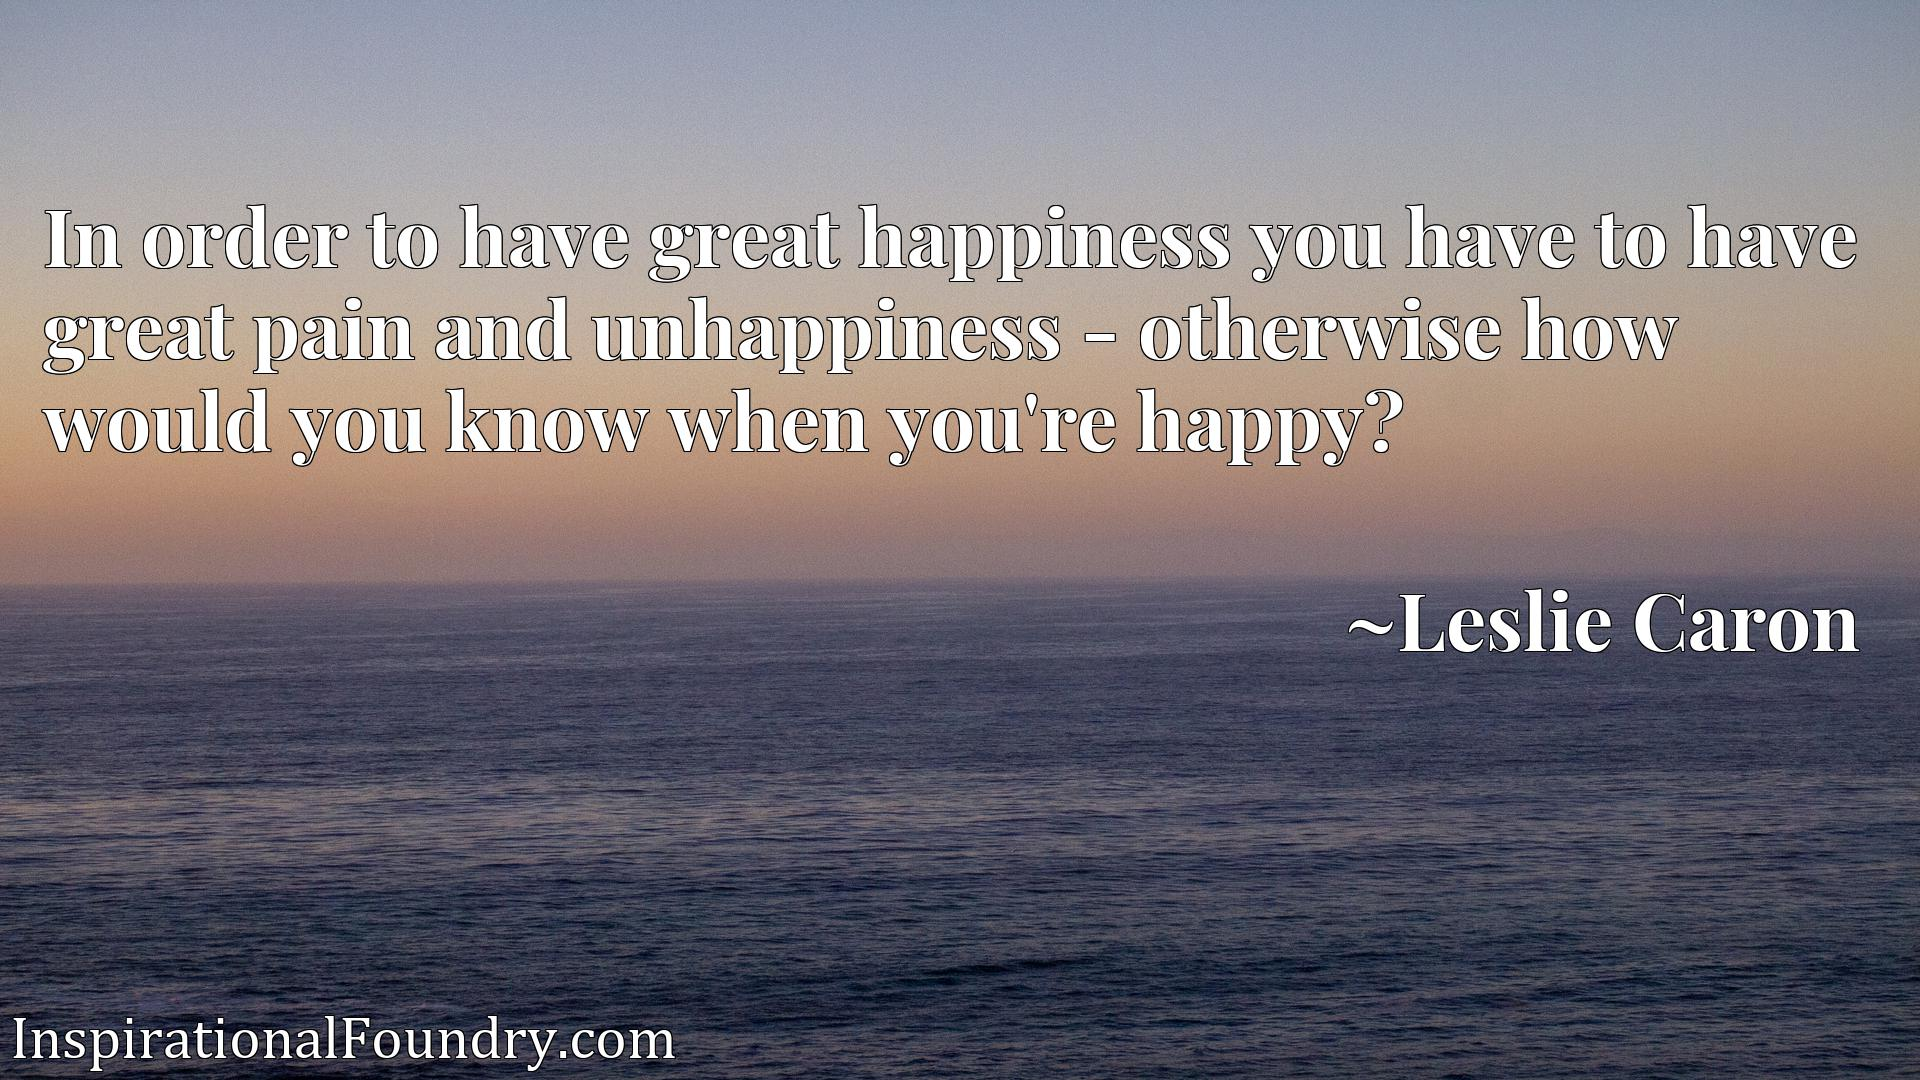 In order to have great happiness you have to have great pain and unhappiness - otherwise how would you know when you're happy?